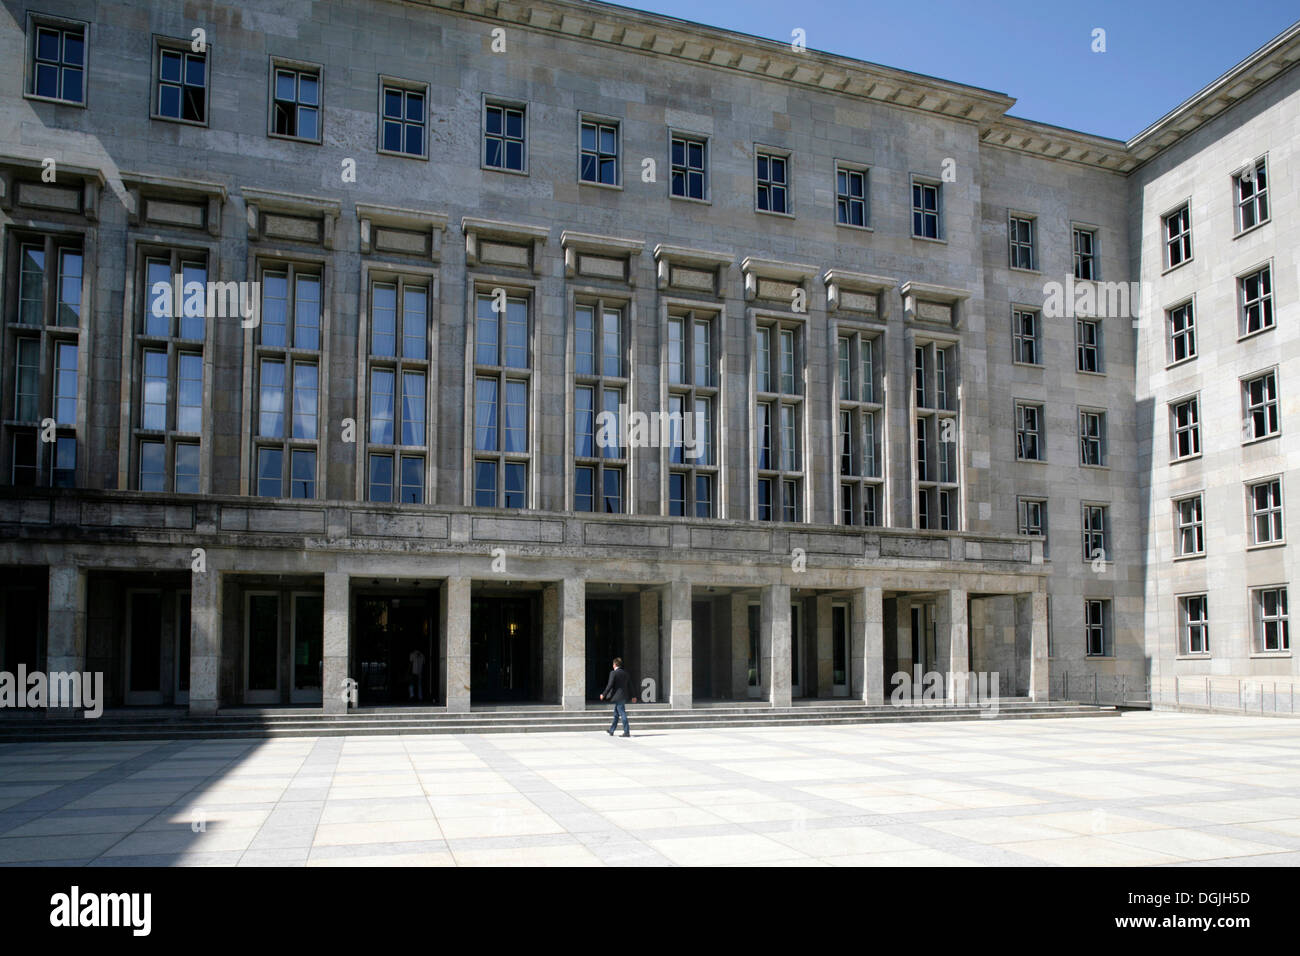 Federal Ministry of Finance, Berlin-Mitte, Berlin, Germany - Stock Image